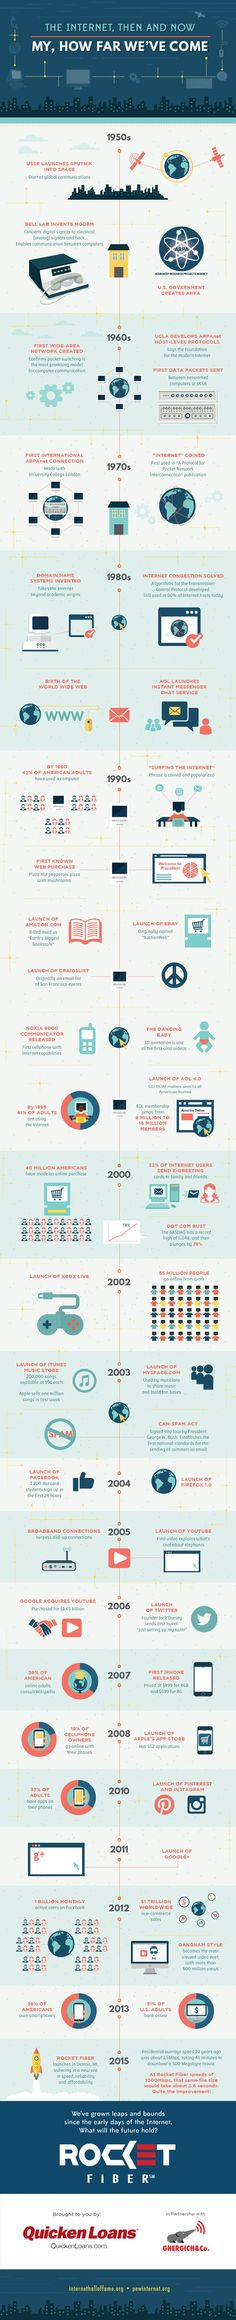 The Internet Then and Now #infographic #Internet #Technology #History